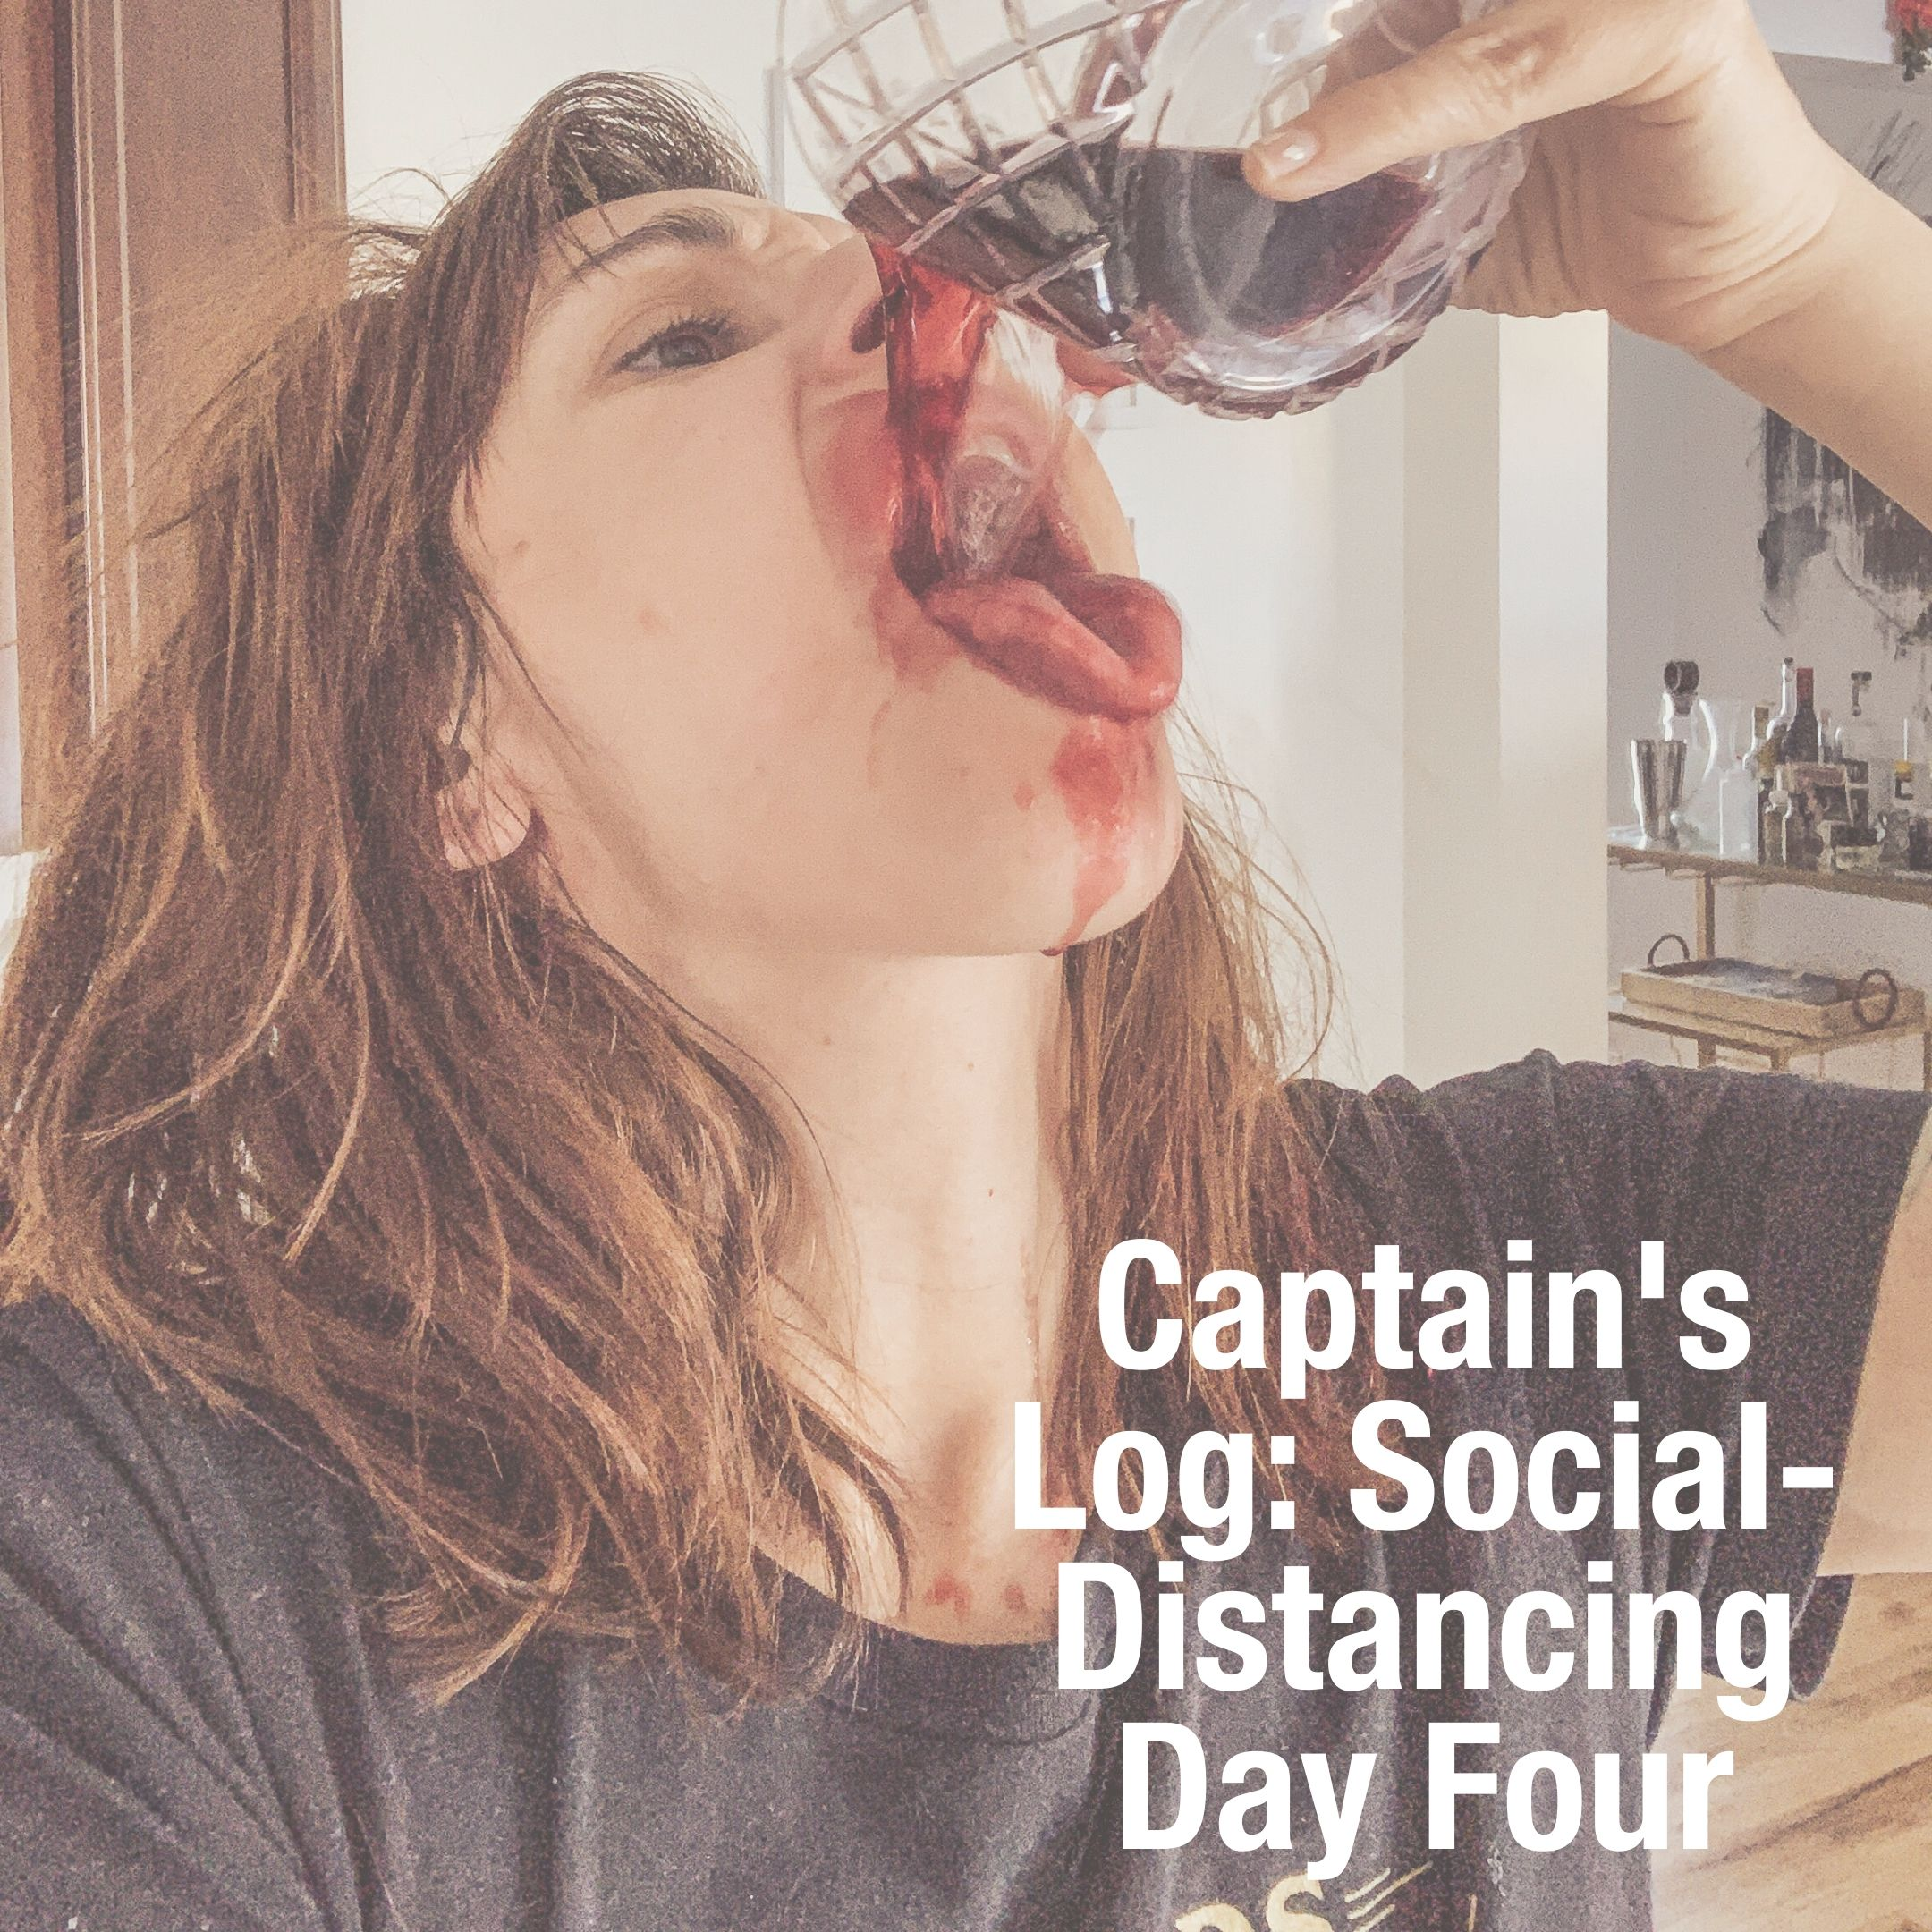 Captain's Log: Covid 19 Social-Distancing Day Four